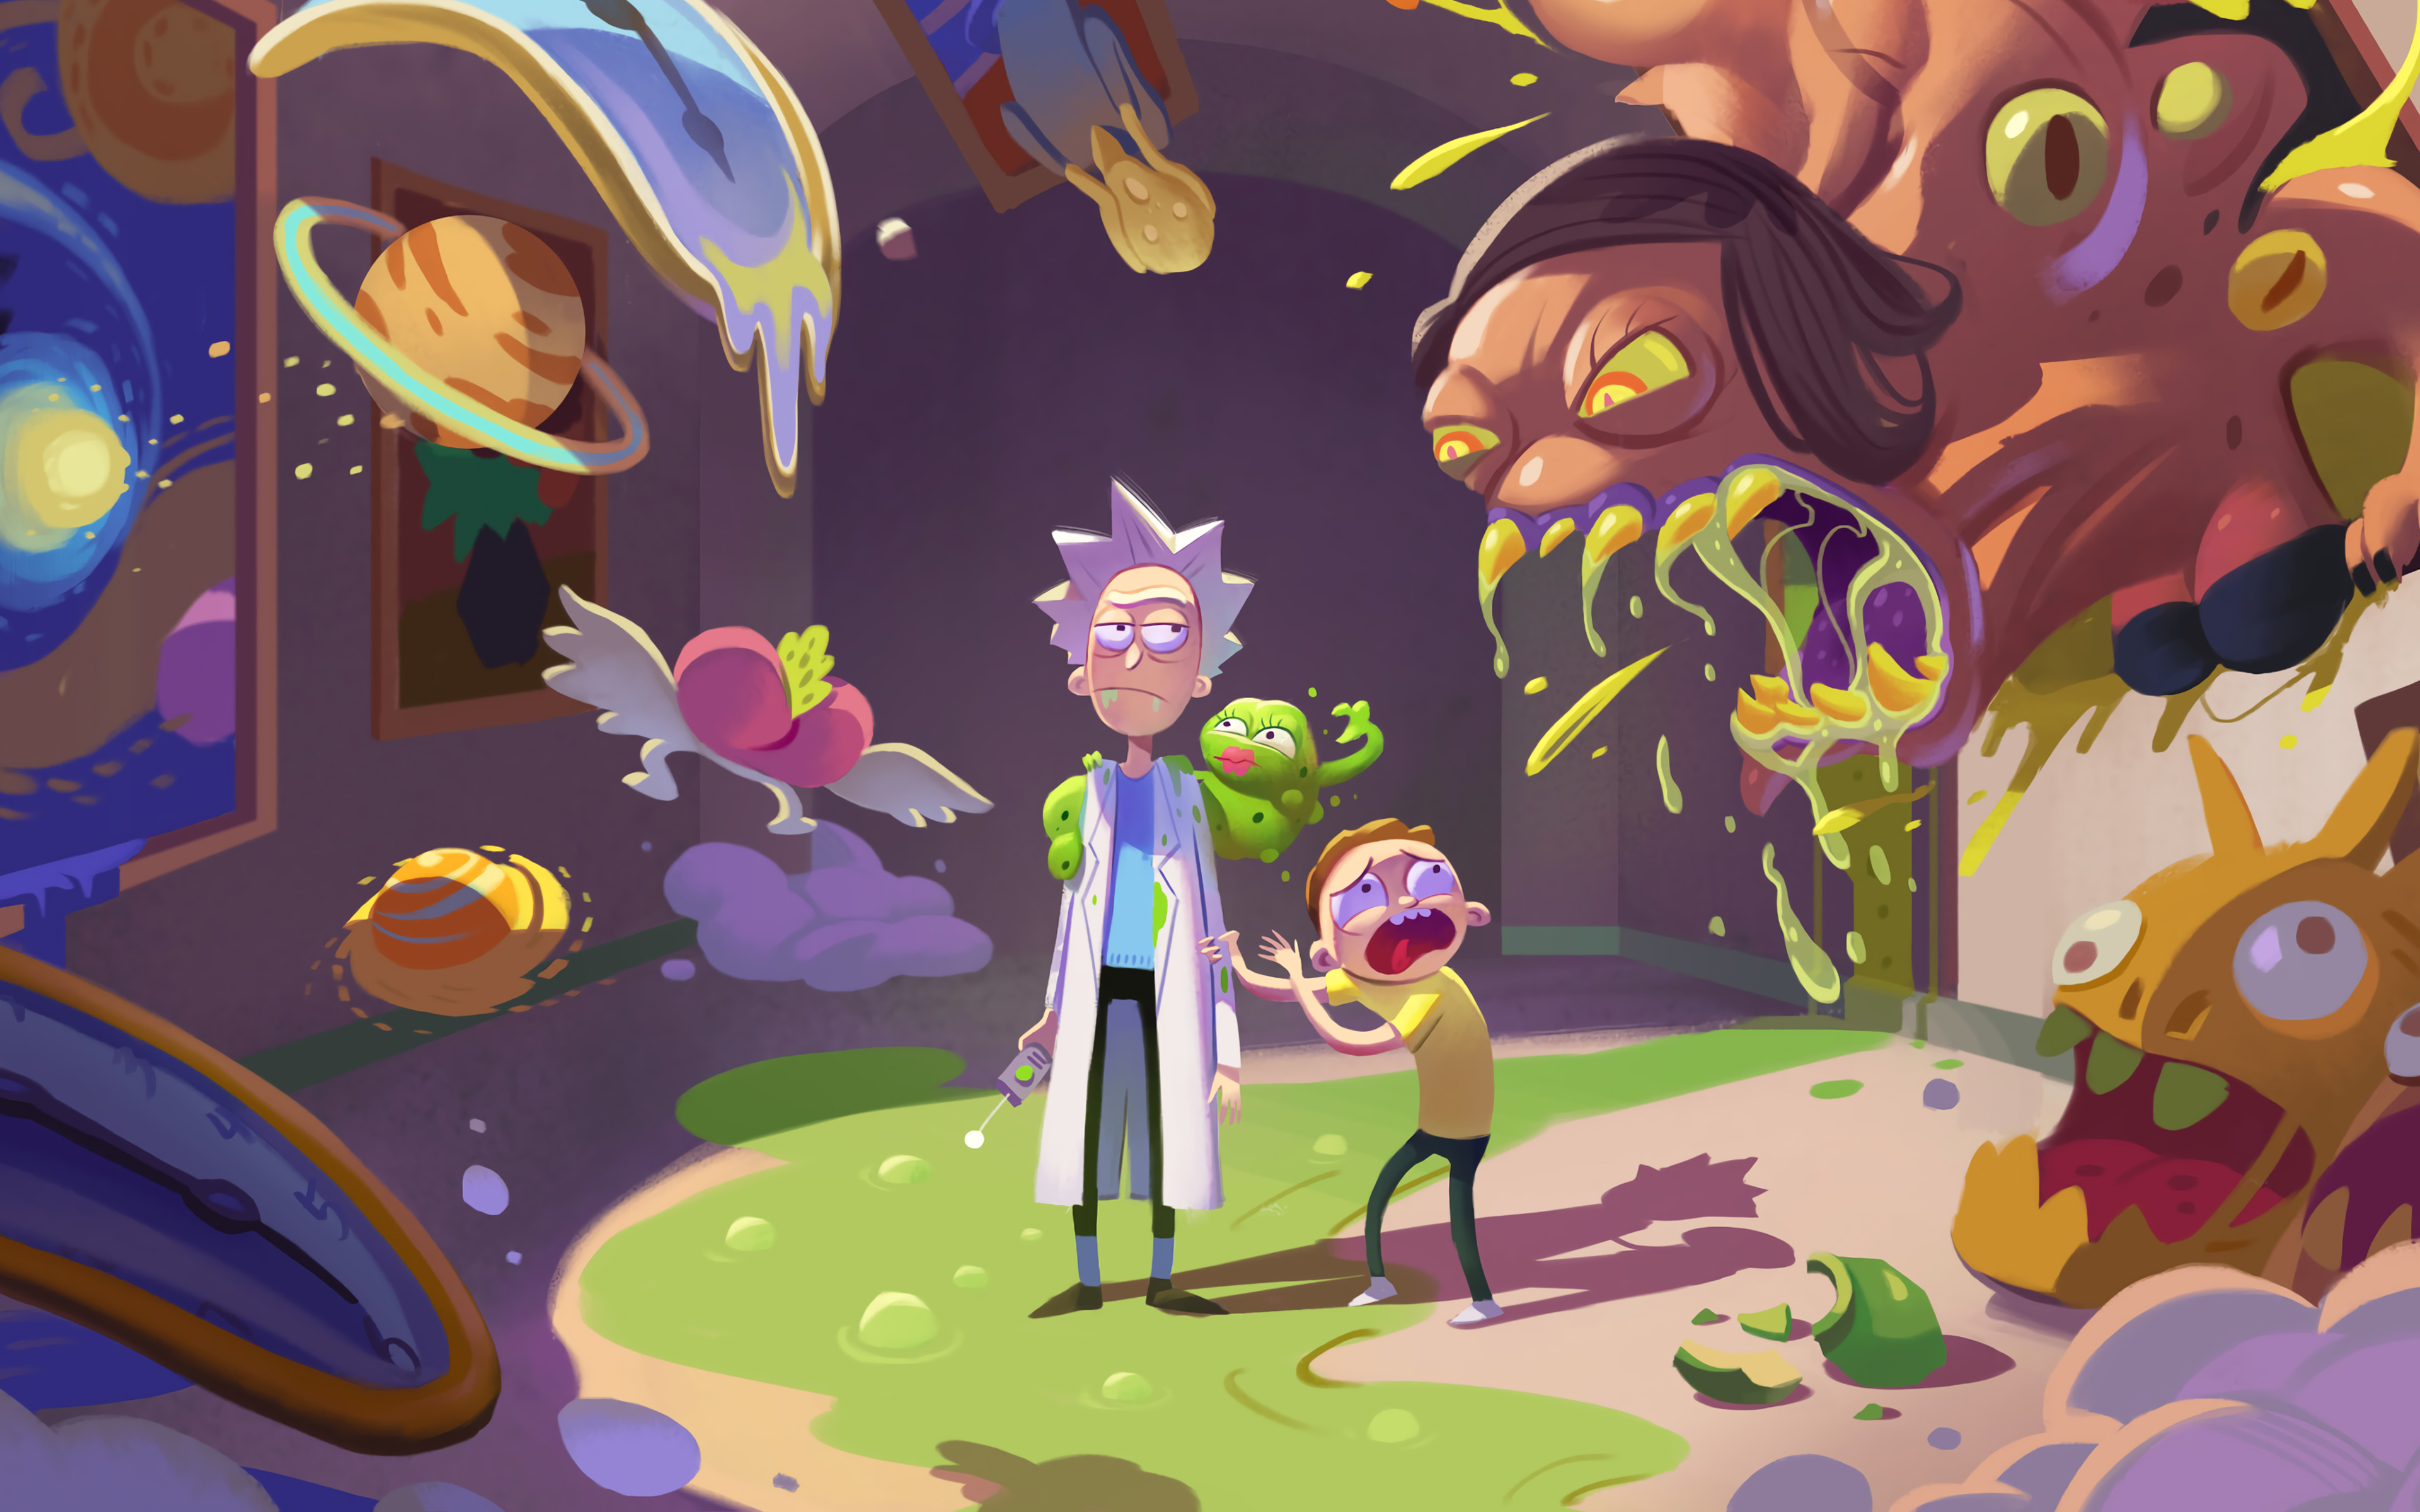 Rick And Morty Season 4 Wallpaper 4k Ultra Hd Id 4114